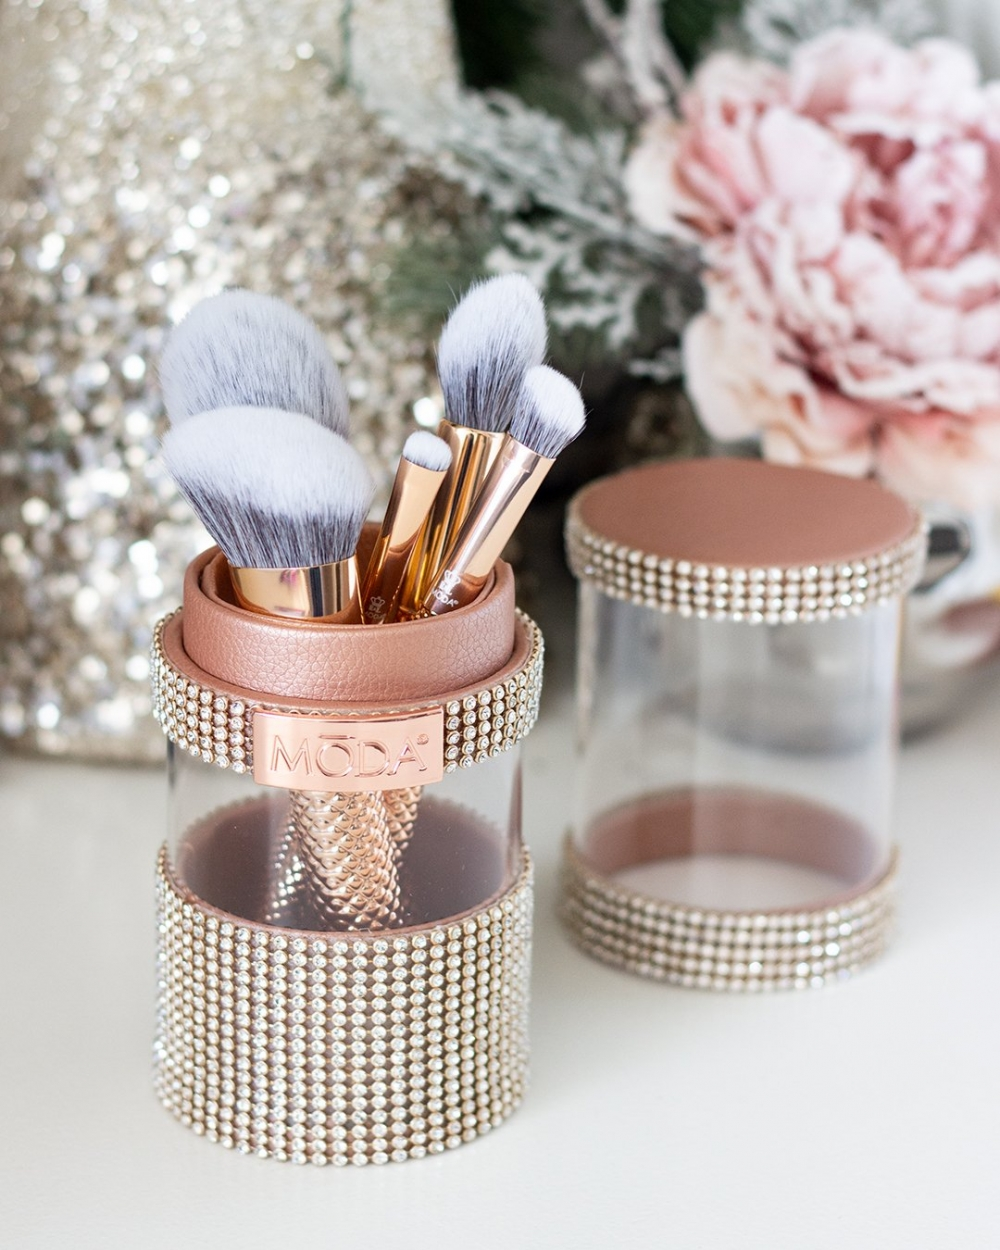 Shop MODA's Metallic Holiday Brush Set